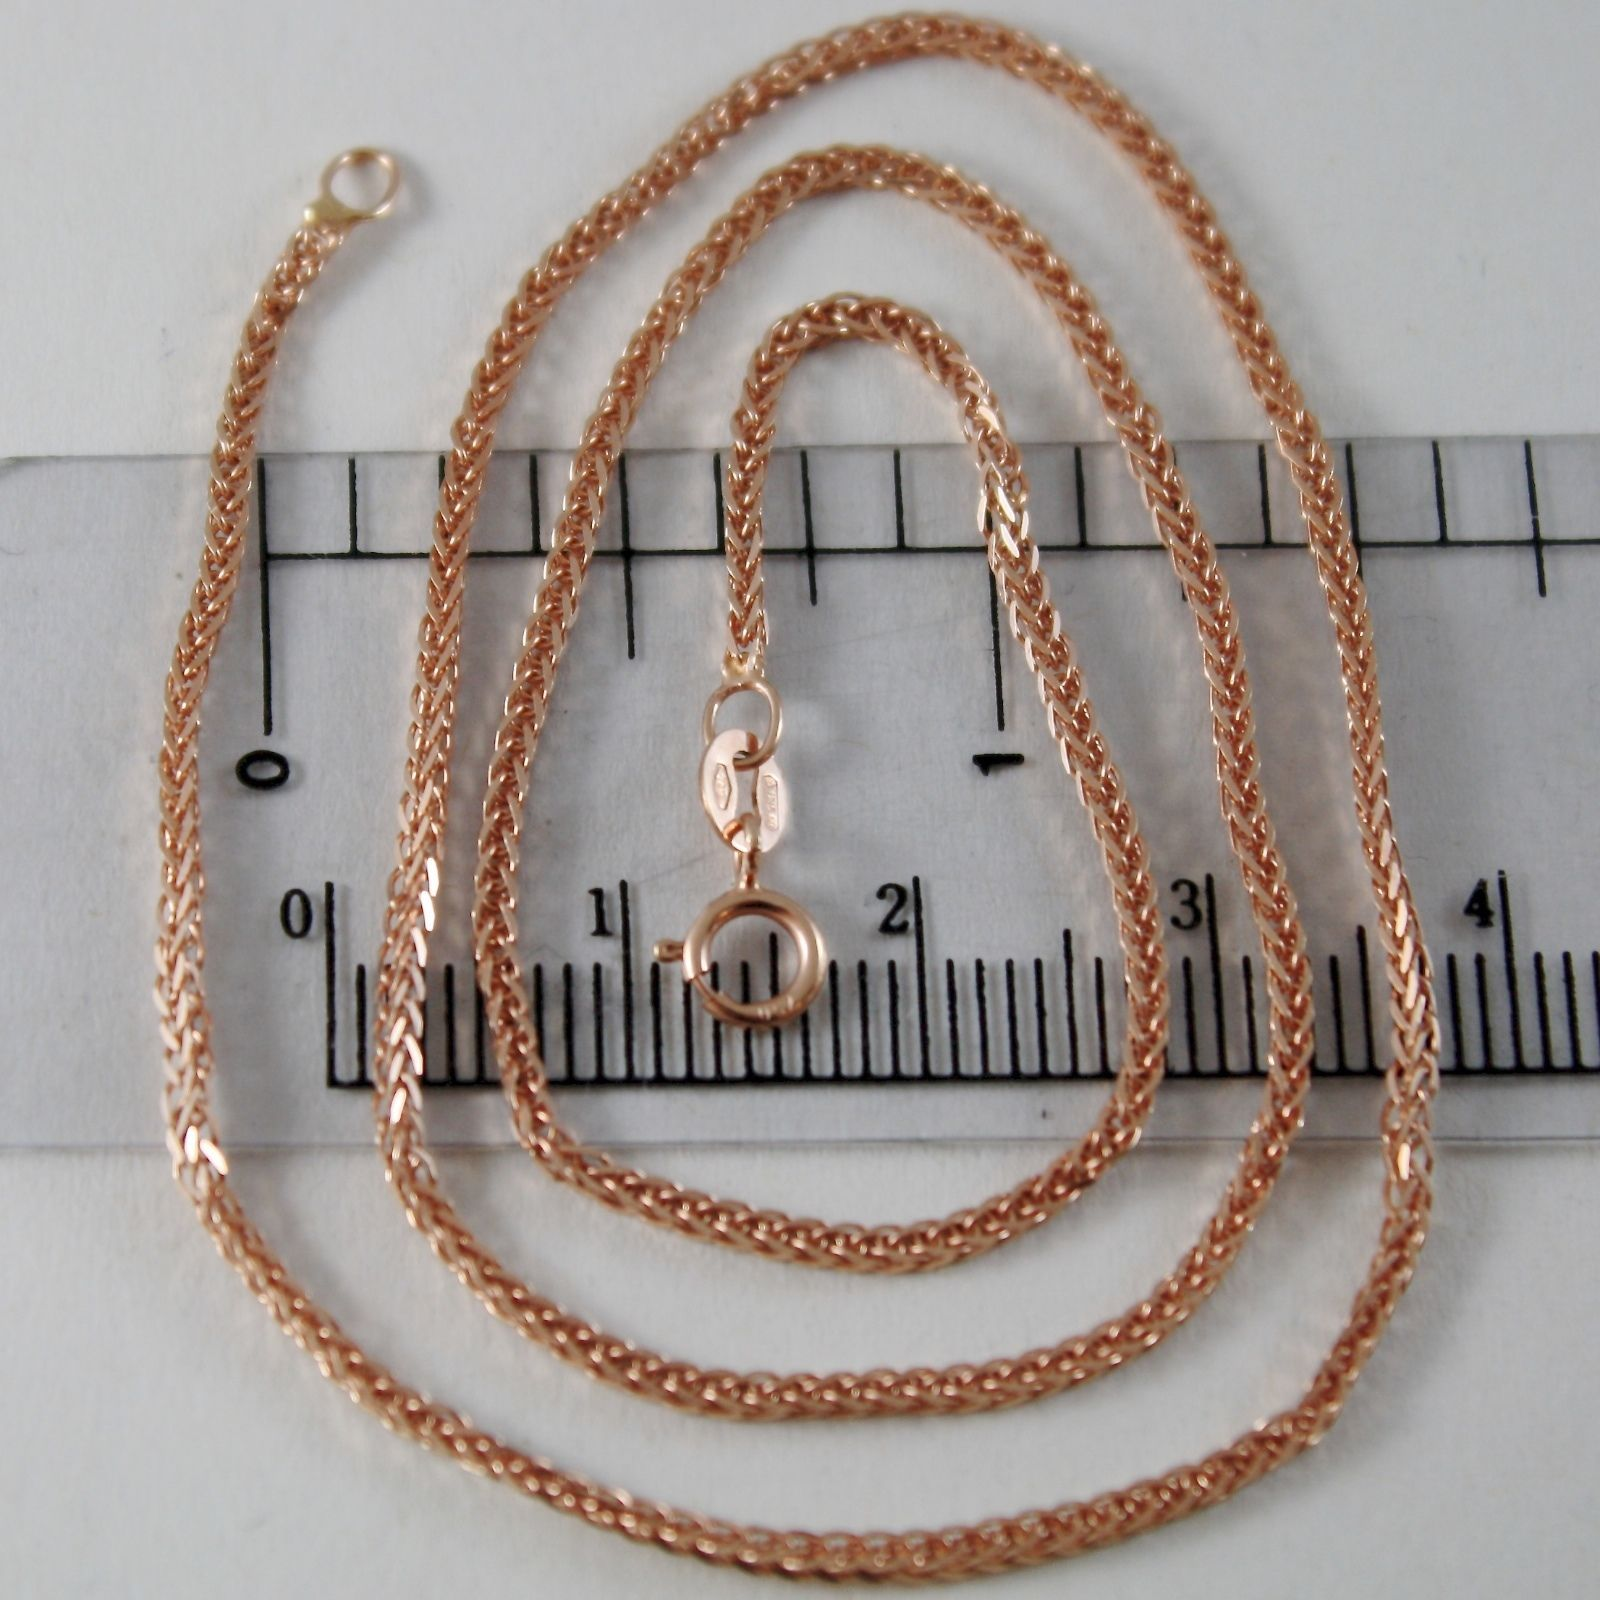 18K ROSE PINK GOLD CHAIN NECKLACE MINI EAR LINK 1.1 MM, 15.75 IN. MADE IN ITALY